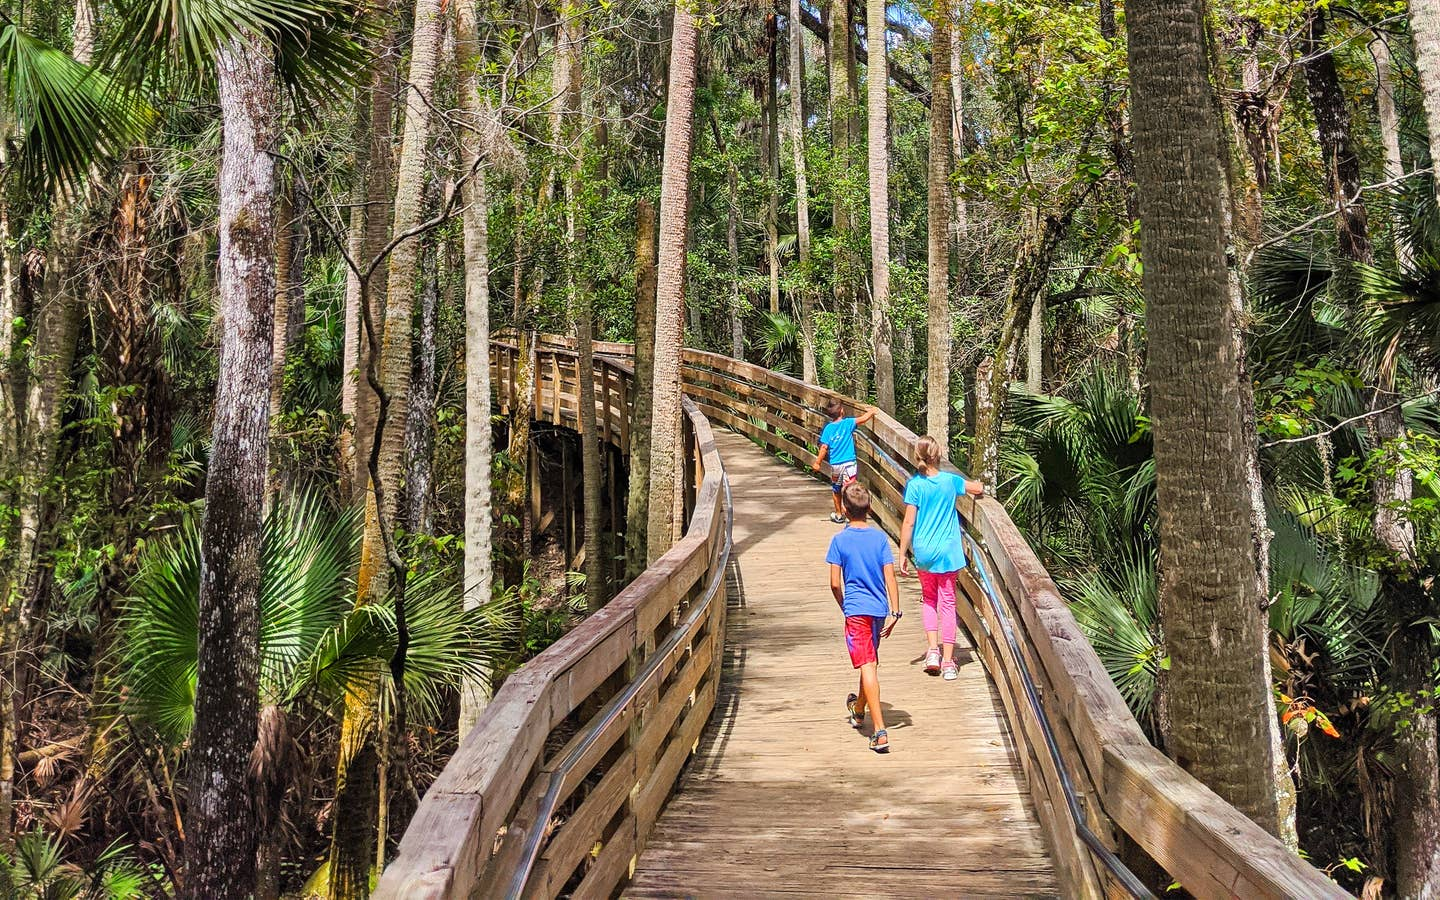 Two young boys and a young girl walk up a wooden trail bridge through some trees and over a creek.